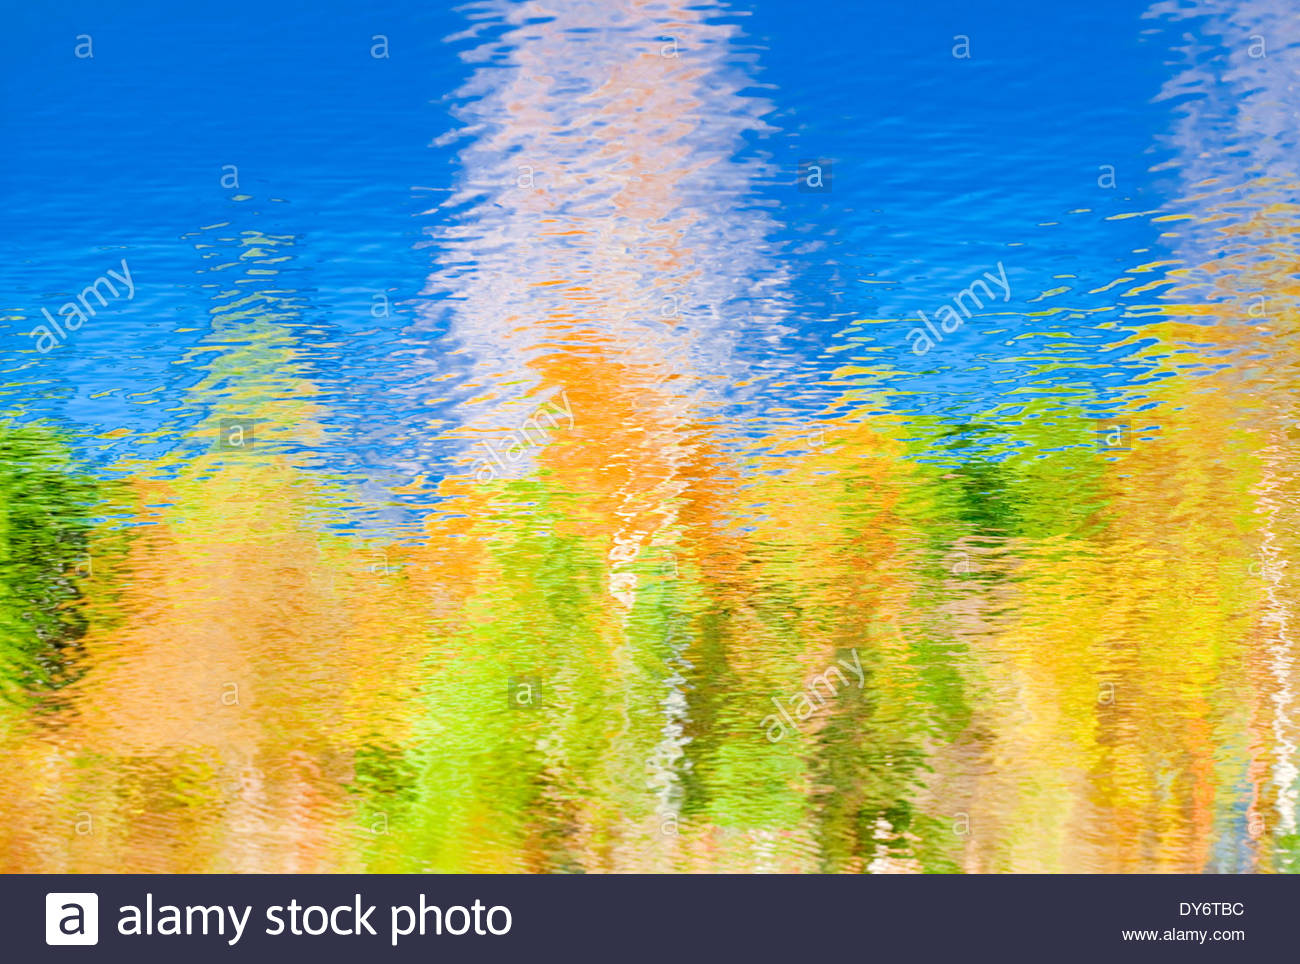 Reflections - Stock Image